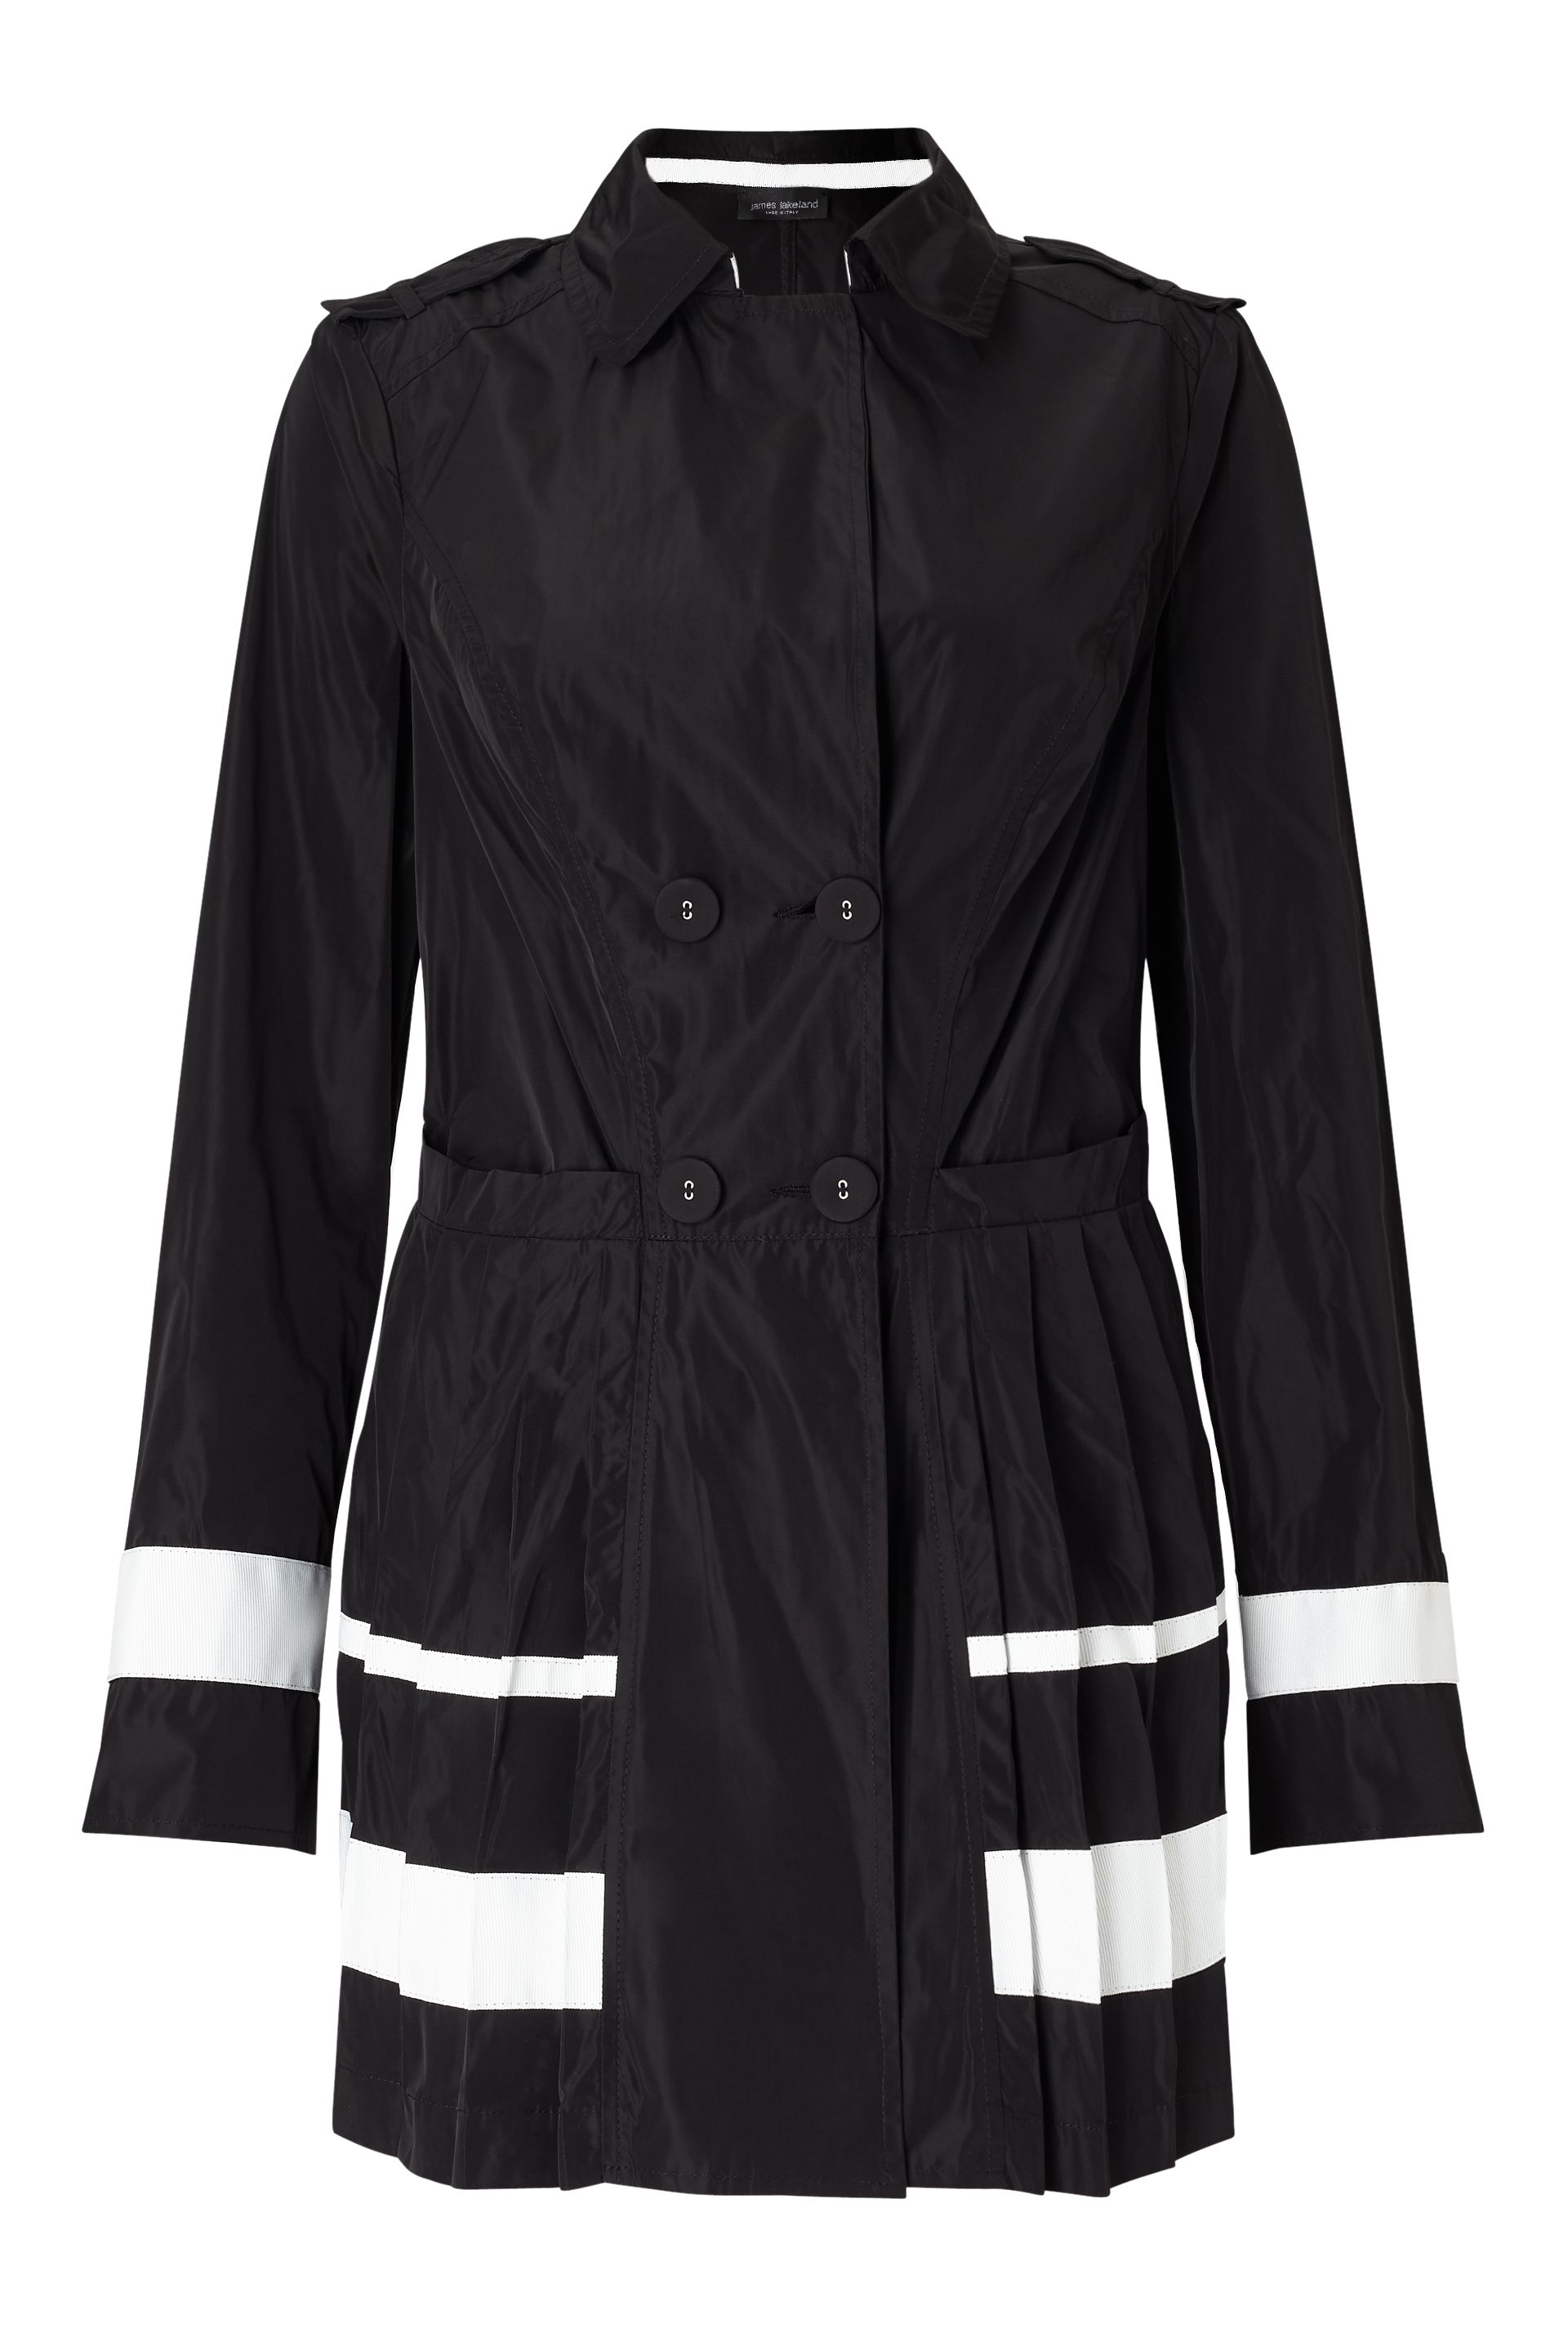 James Lakeland Pleated Trench Coat, Black